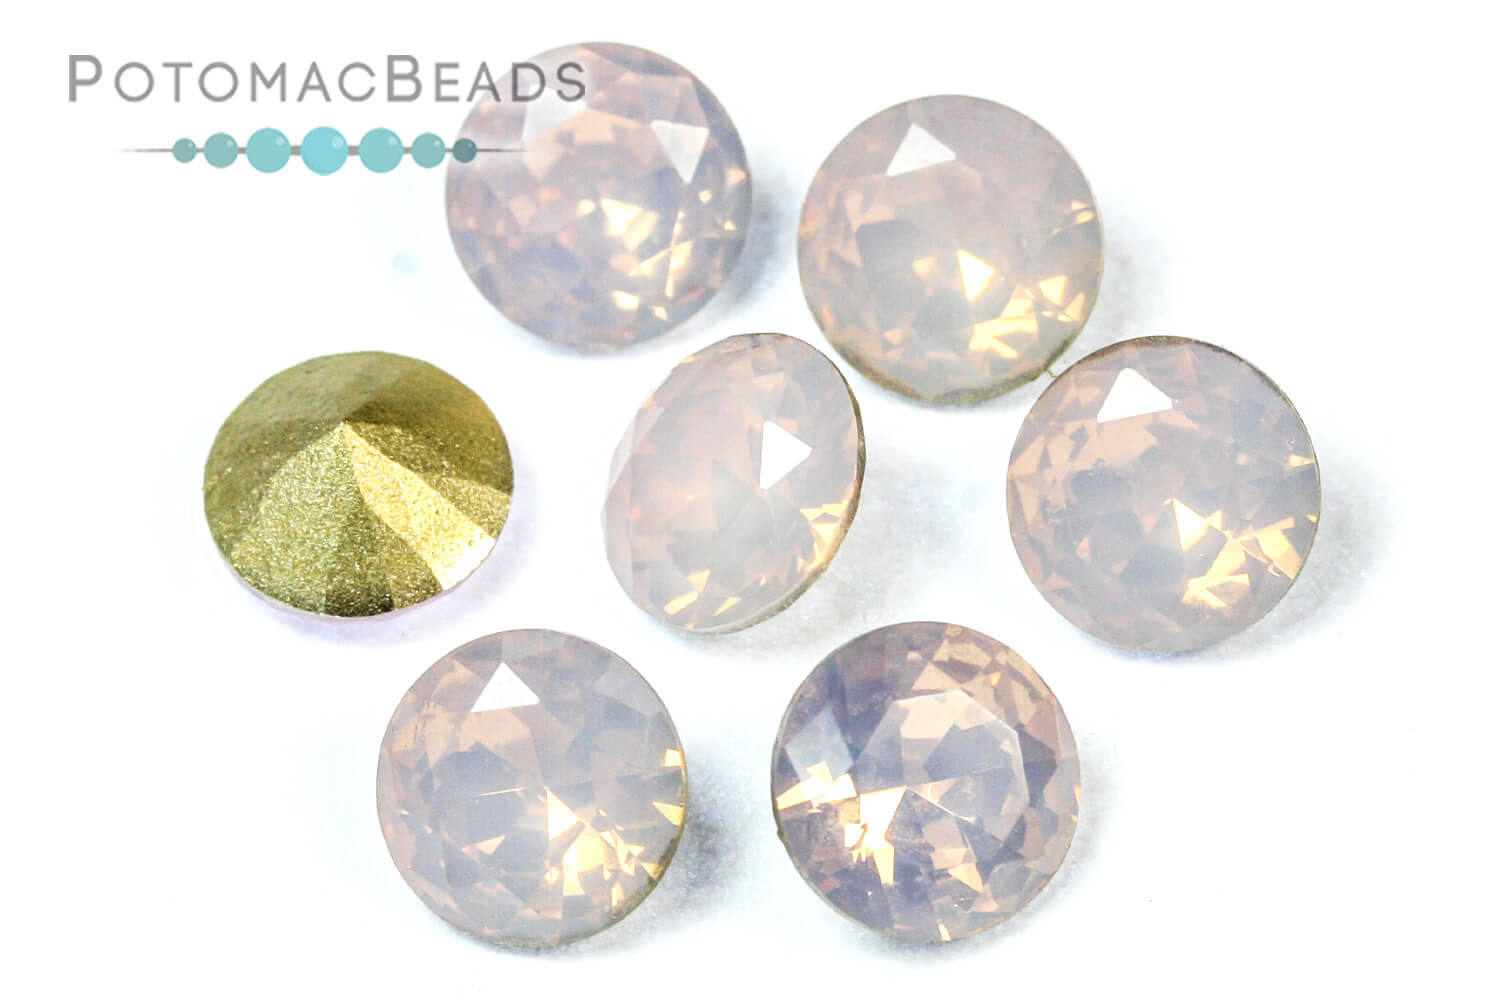 Jewelry Making Supplies & Beads / Beads and Crystals / Chatons SS39 (8mm)